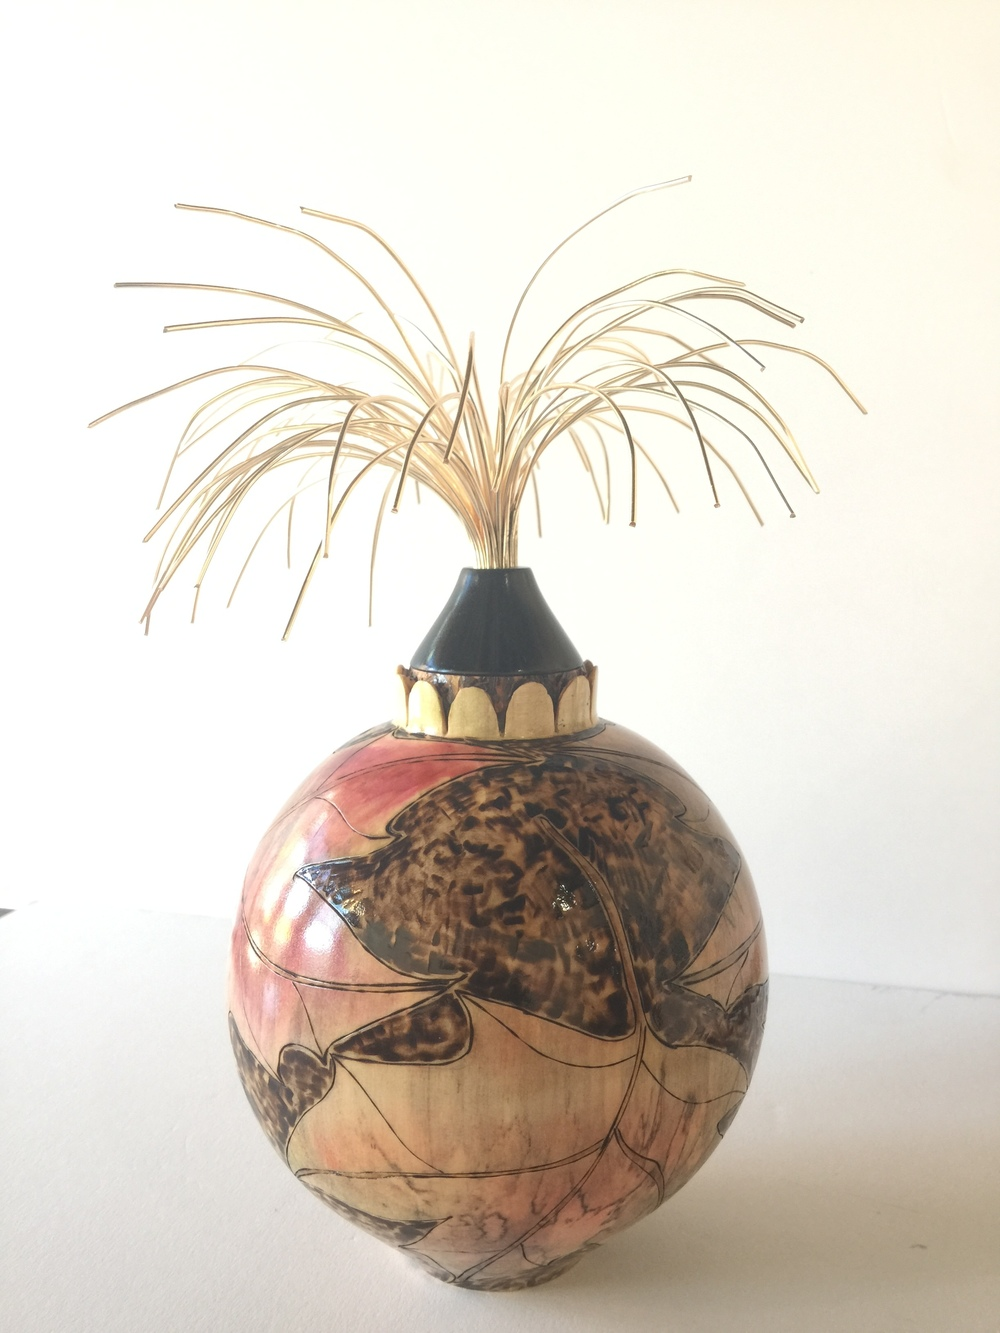 "Maple Hollow Form Pyrographed Dyed Leaves with Ebony Gold Wire Tree 11'' high x 7"" wide - $550"